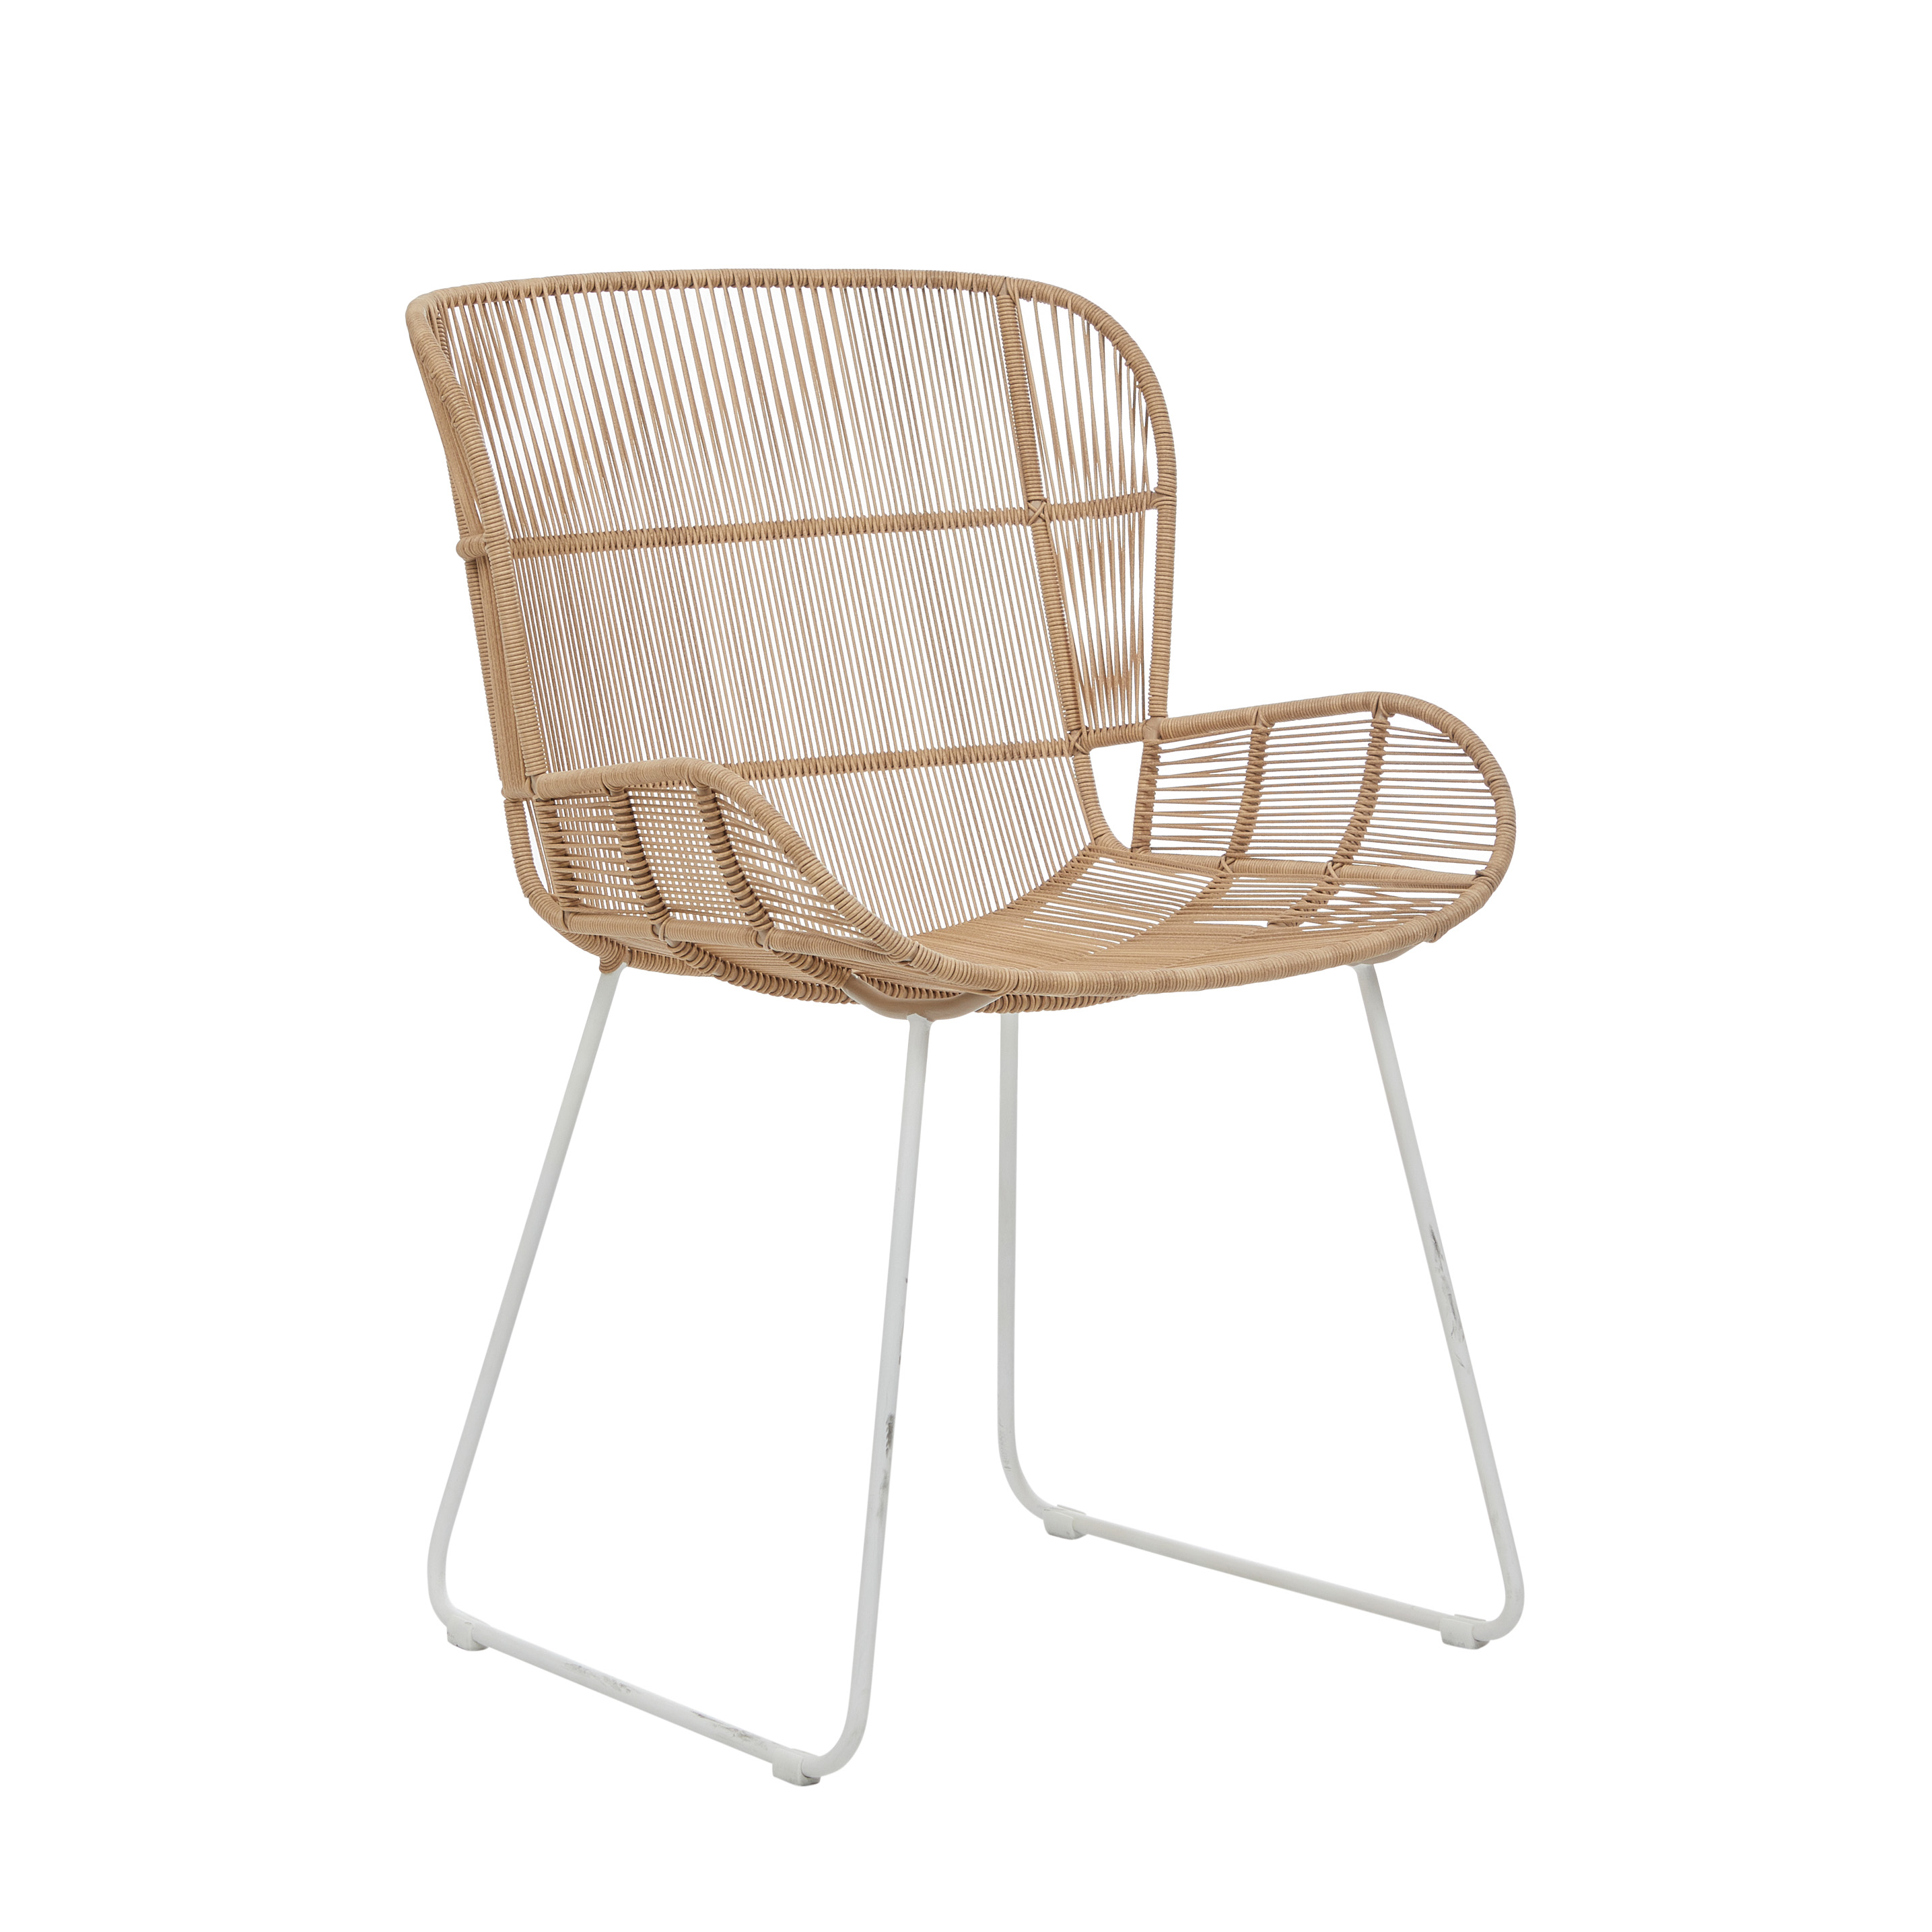 Furniture Hero-Images Dining-Chairs-Benches-and-Stools granada-butterfly-04